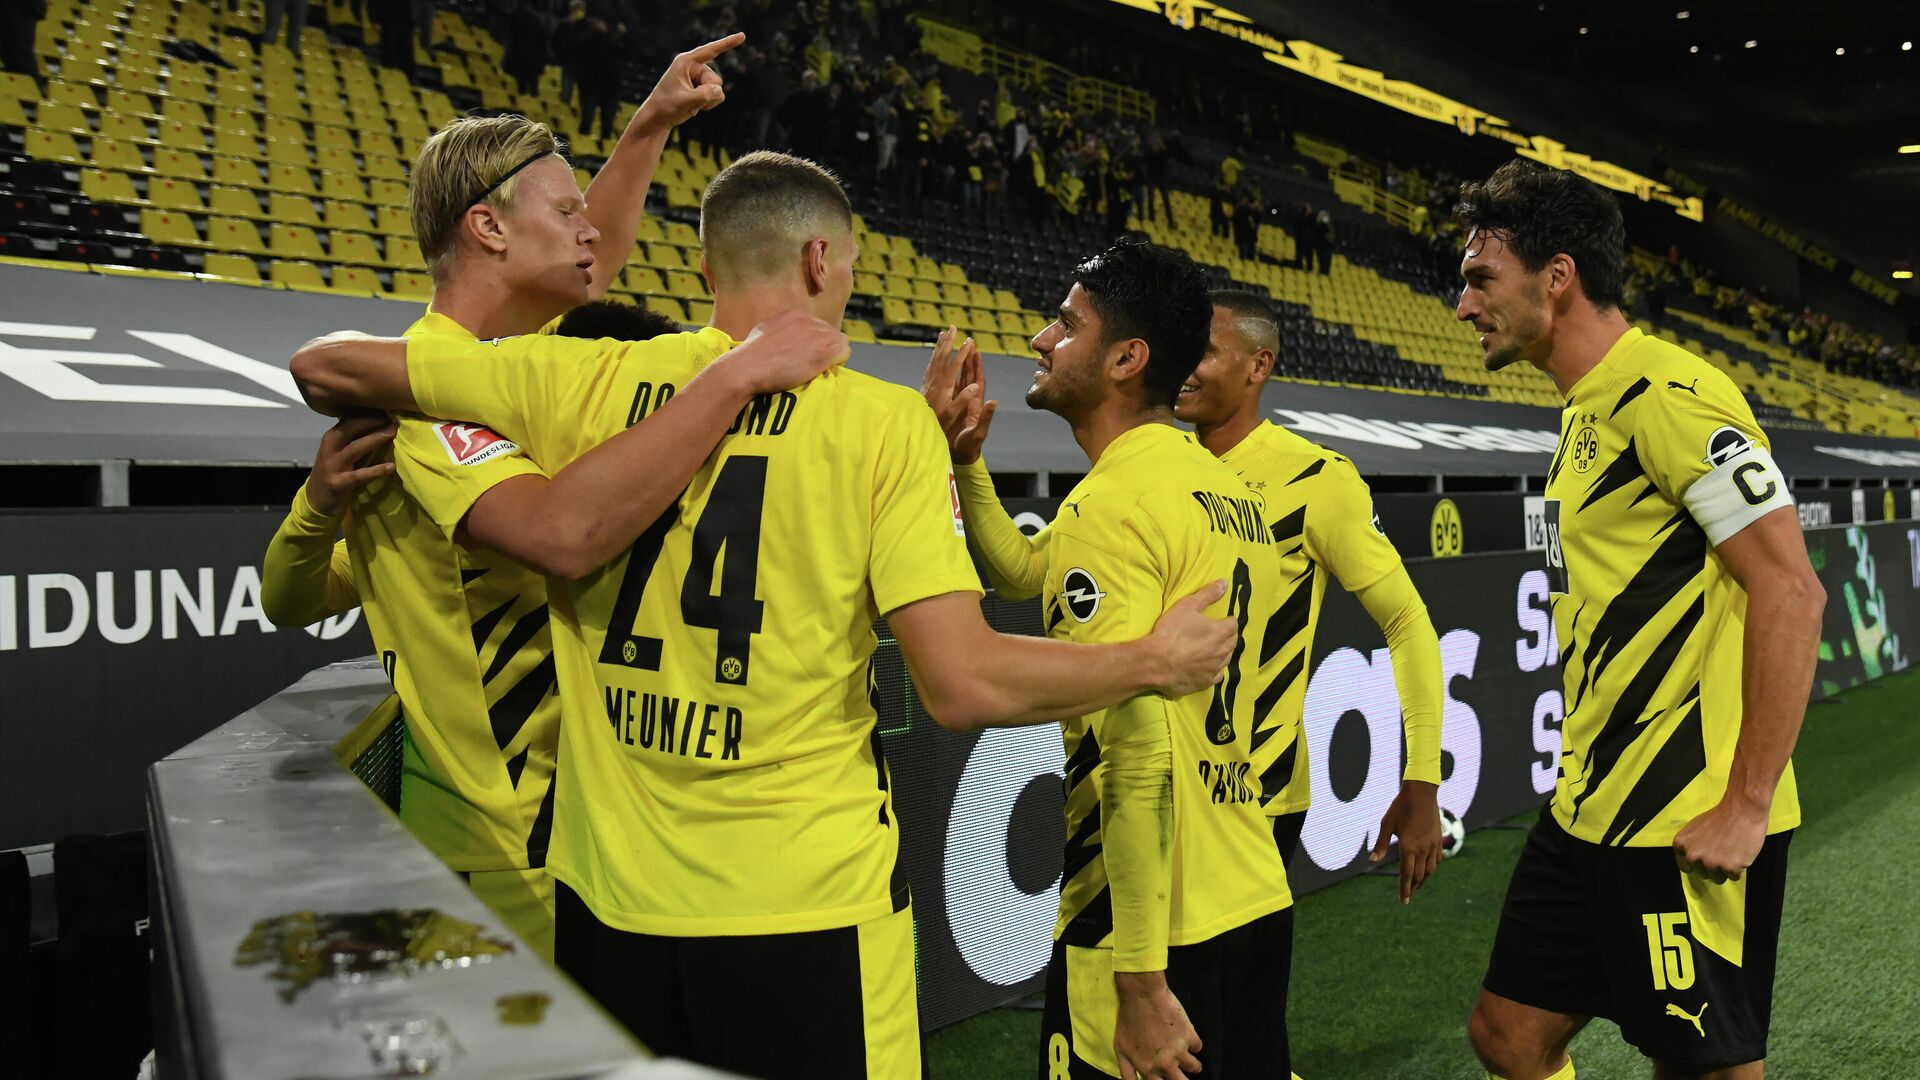 Dortmund's Norwegian forward Erling Braut Haaland (L) celebrates scoring the 2-0 goal with his teammates during the German first division Bundesliga football match between BVB Borussia Dortmund v Schalke 04 on October 24, 2020 in Dortmund, western Germany. (Photo by Ina Fassbender / various sources / AFP) / DFL REGULATIONS PROHIBIT ANY USE OF PHOTOGRAPHS AS IMAGE SEQUENCES AND/OR QUASI-VIDEO - РИА Новости, 1920, 24.10.2020